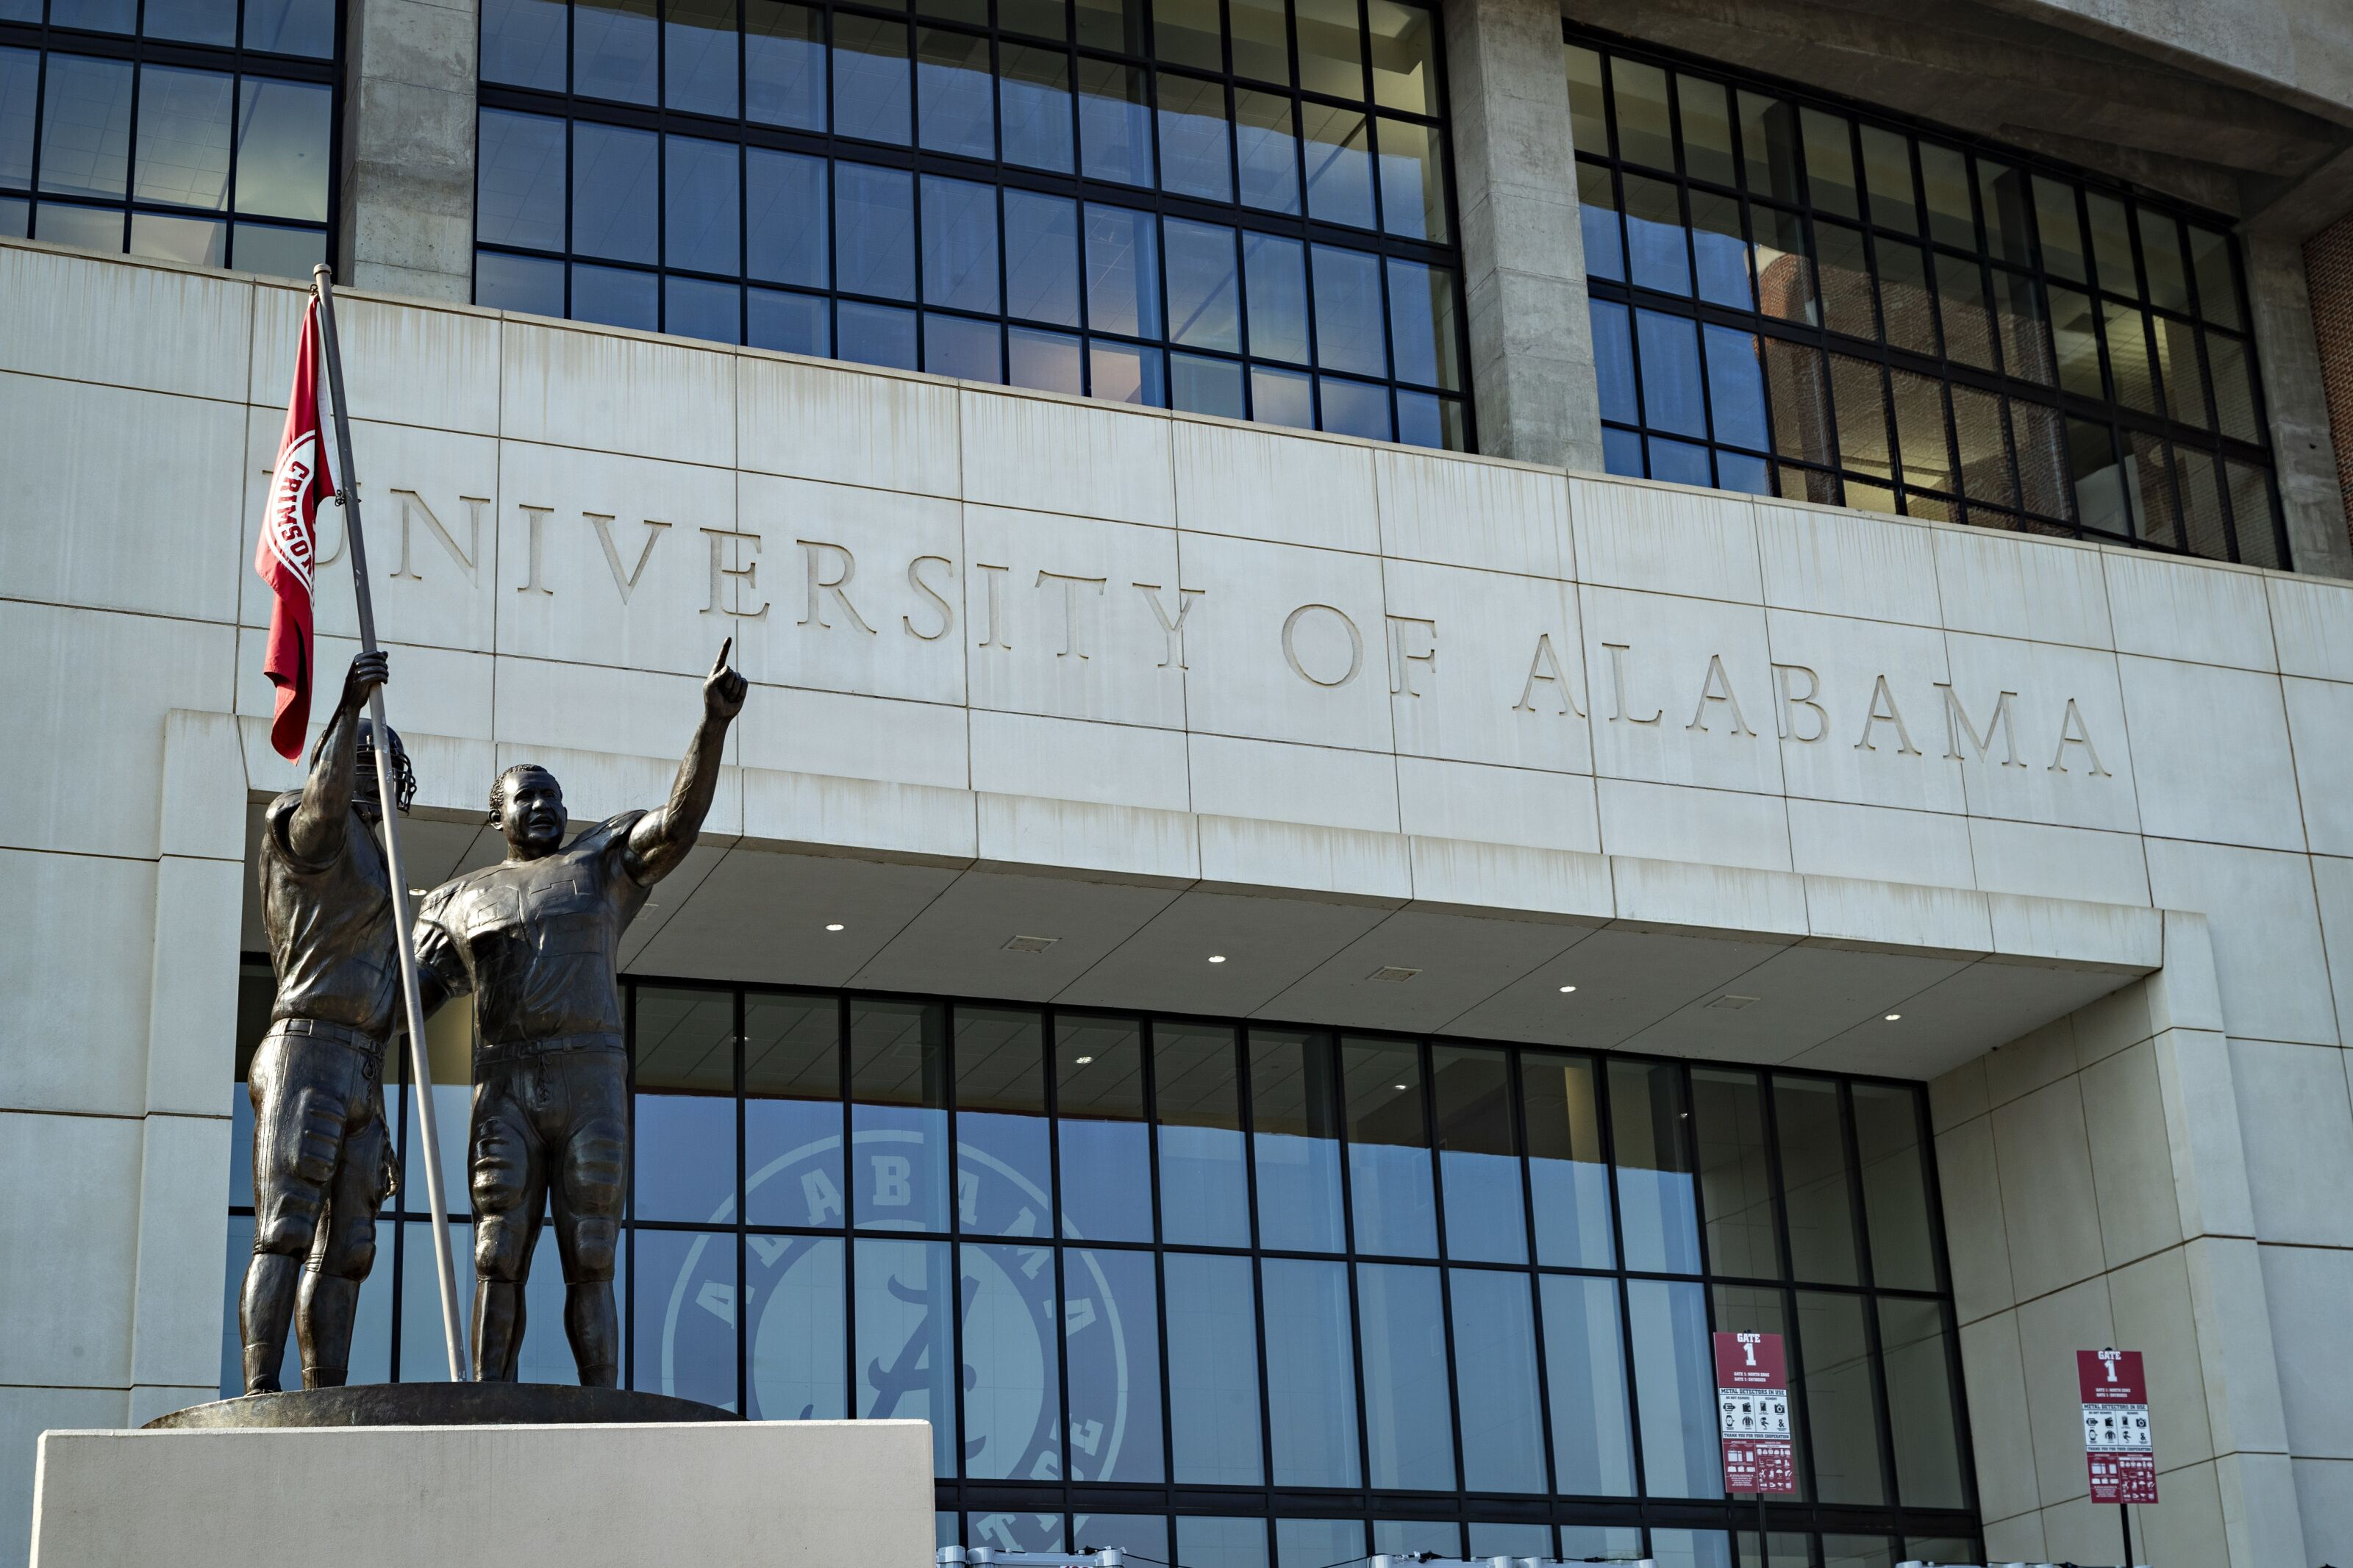 Alabama Football: A day to remember and one to cherish